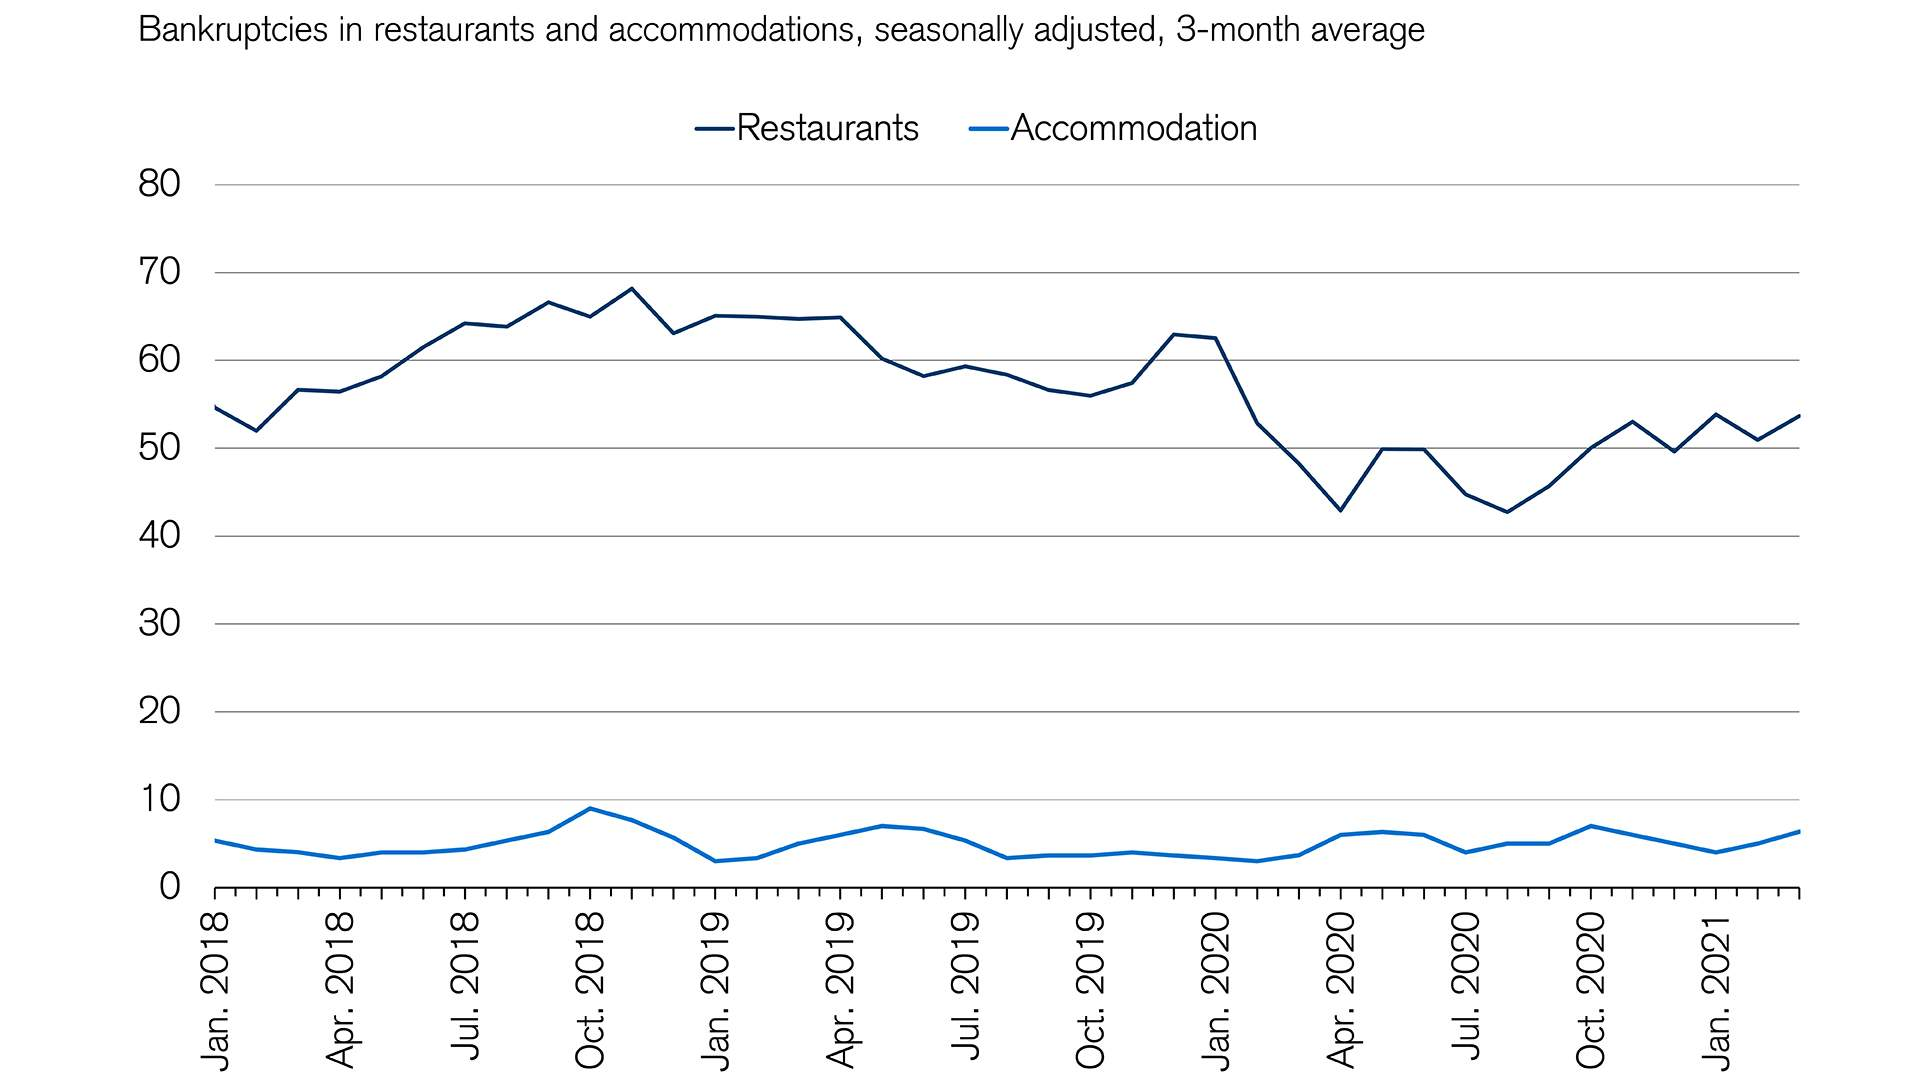 Despite the crisis there is still no discernible trend toward higher hospitality bankruptcy figures.